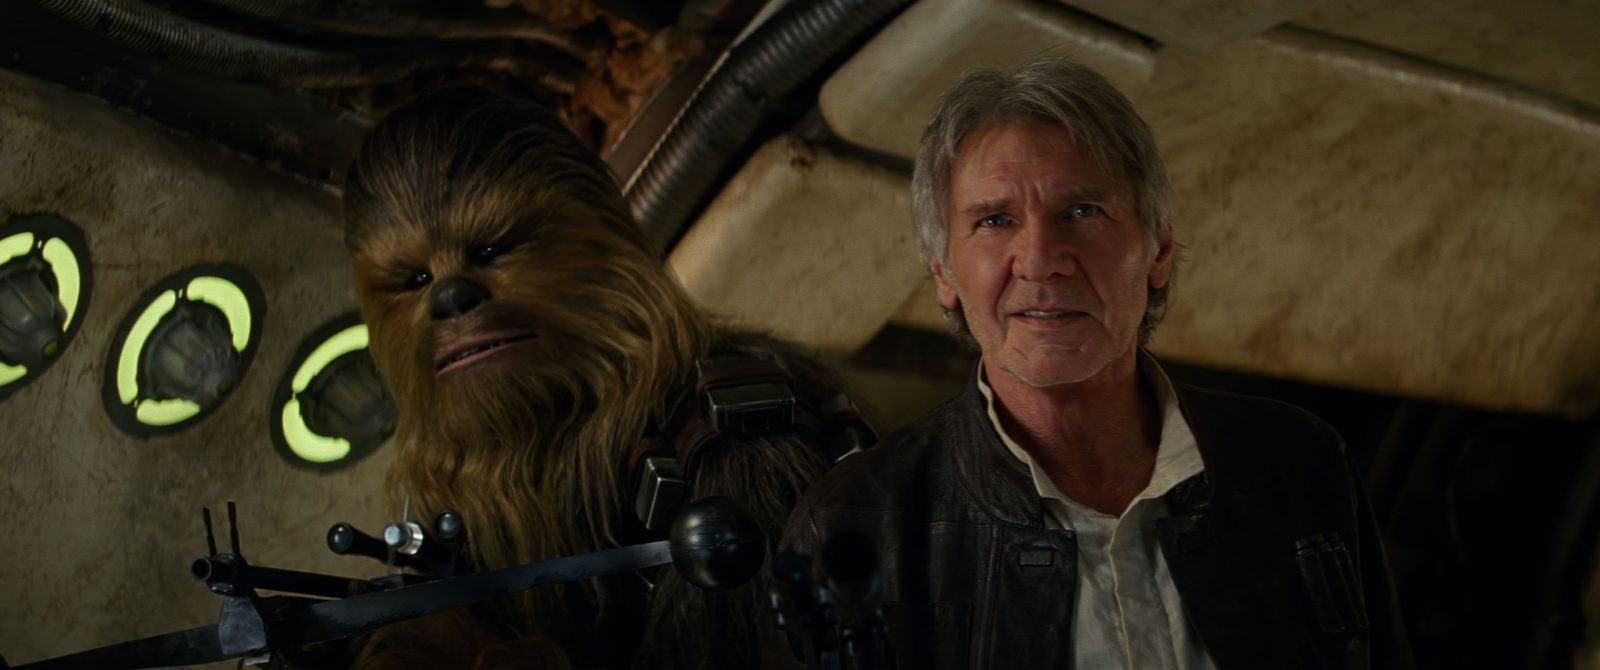 Star Wars VII The Force Awakens 32 - Chewie and Han are home